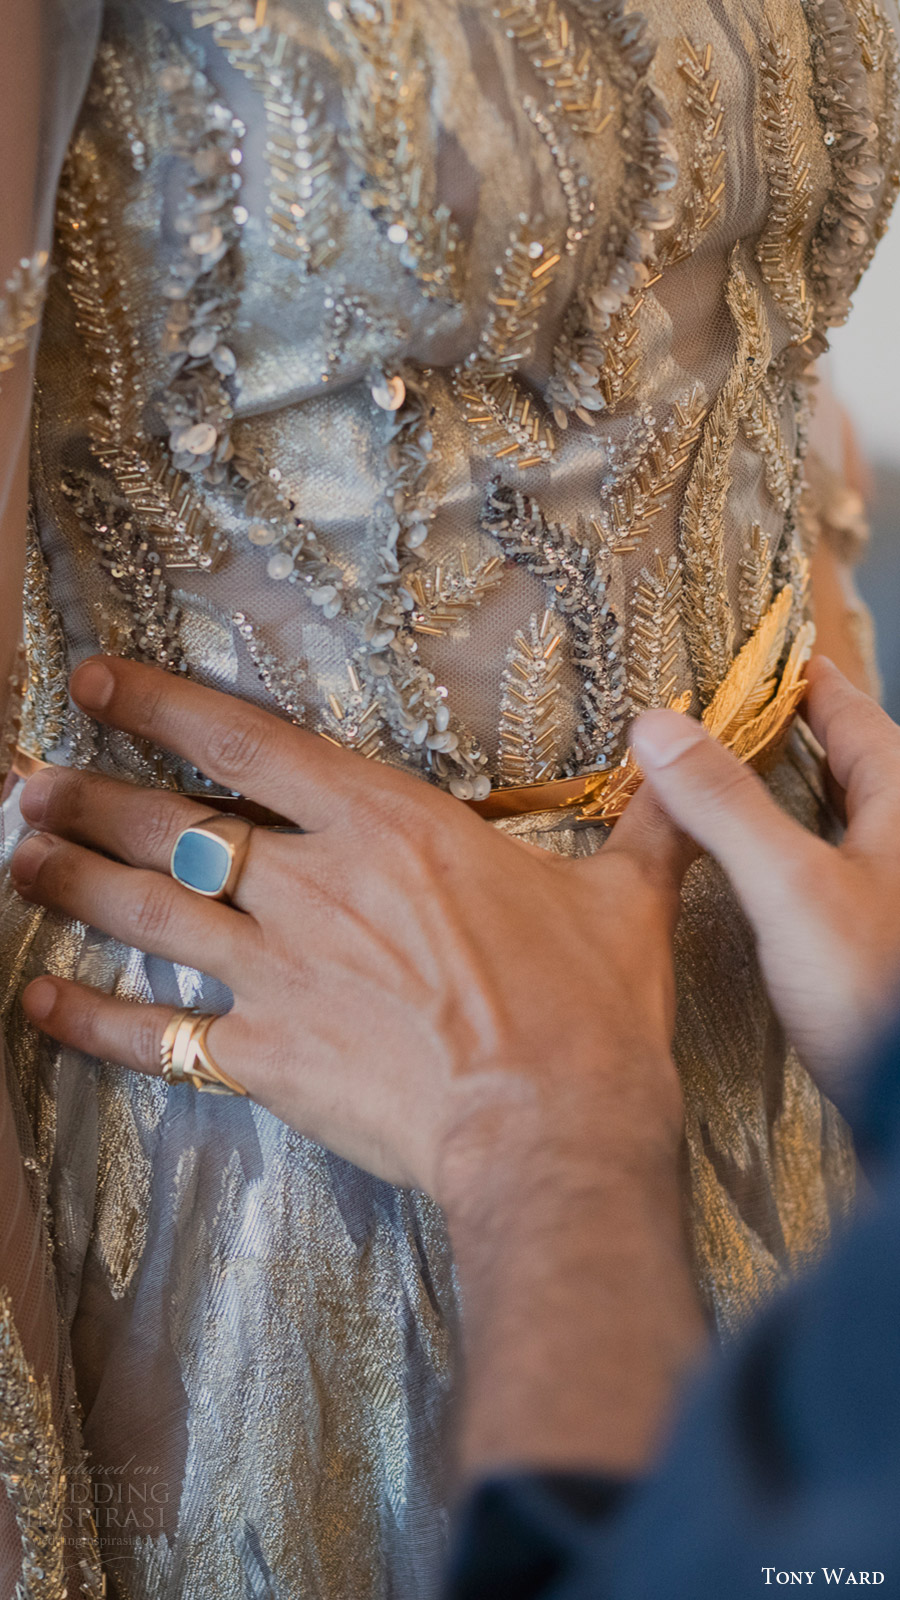 tony-ward-couture-fall-2016-savoire-faire-fitting-details-bodice-dress